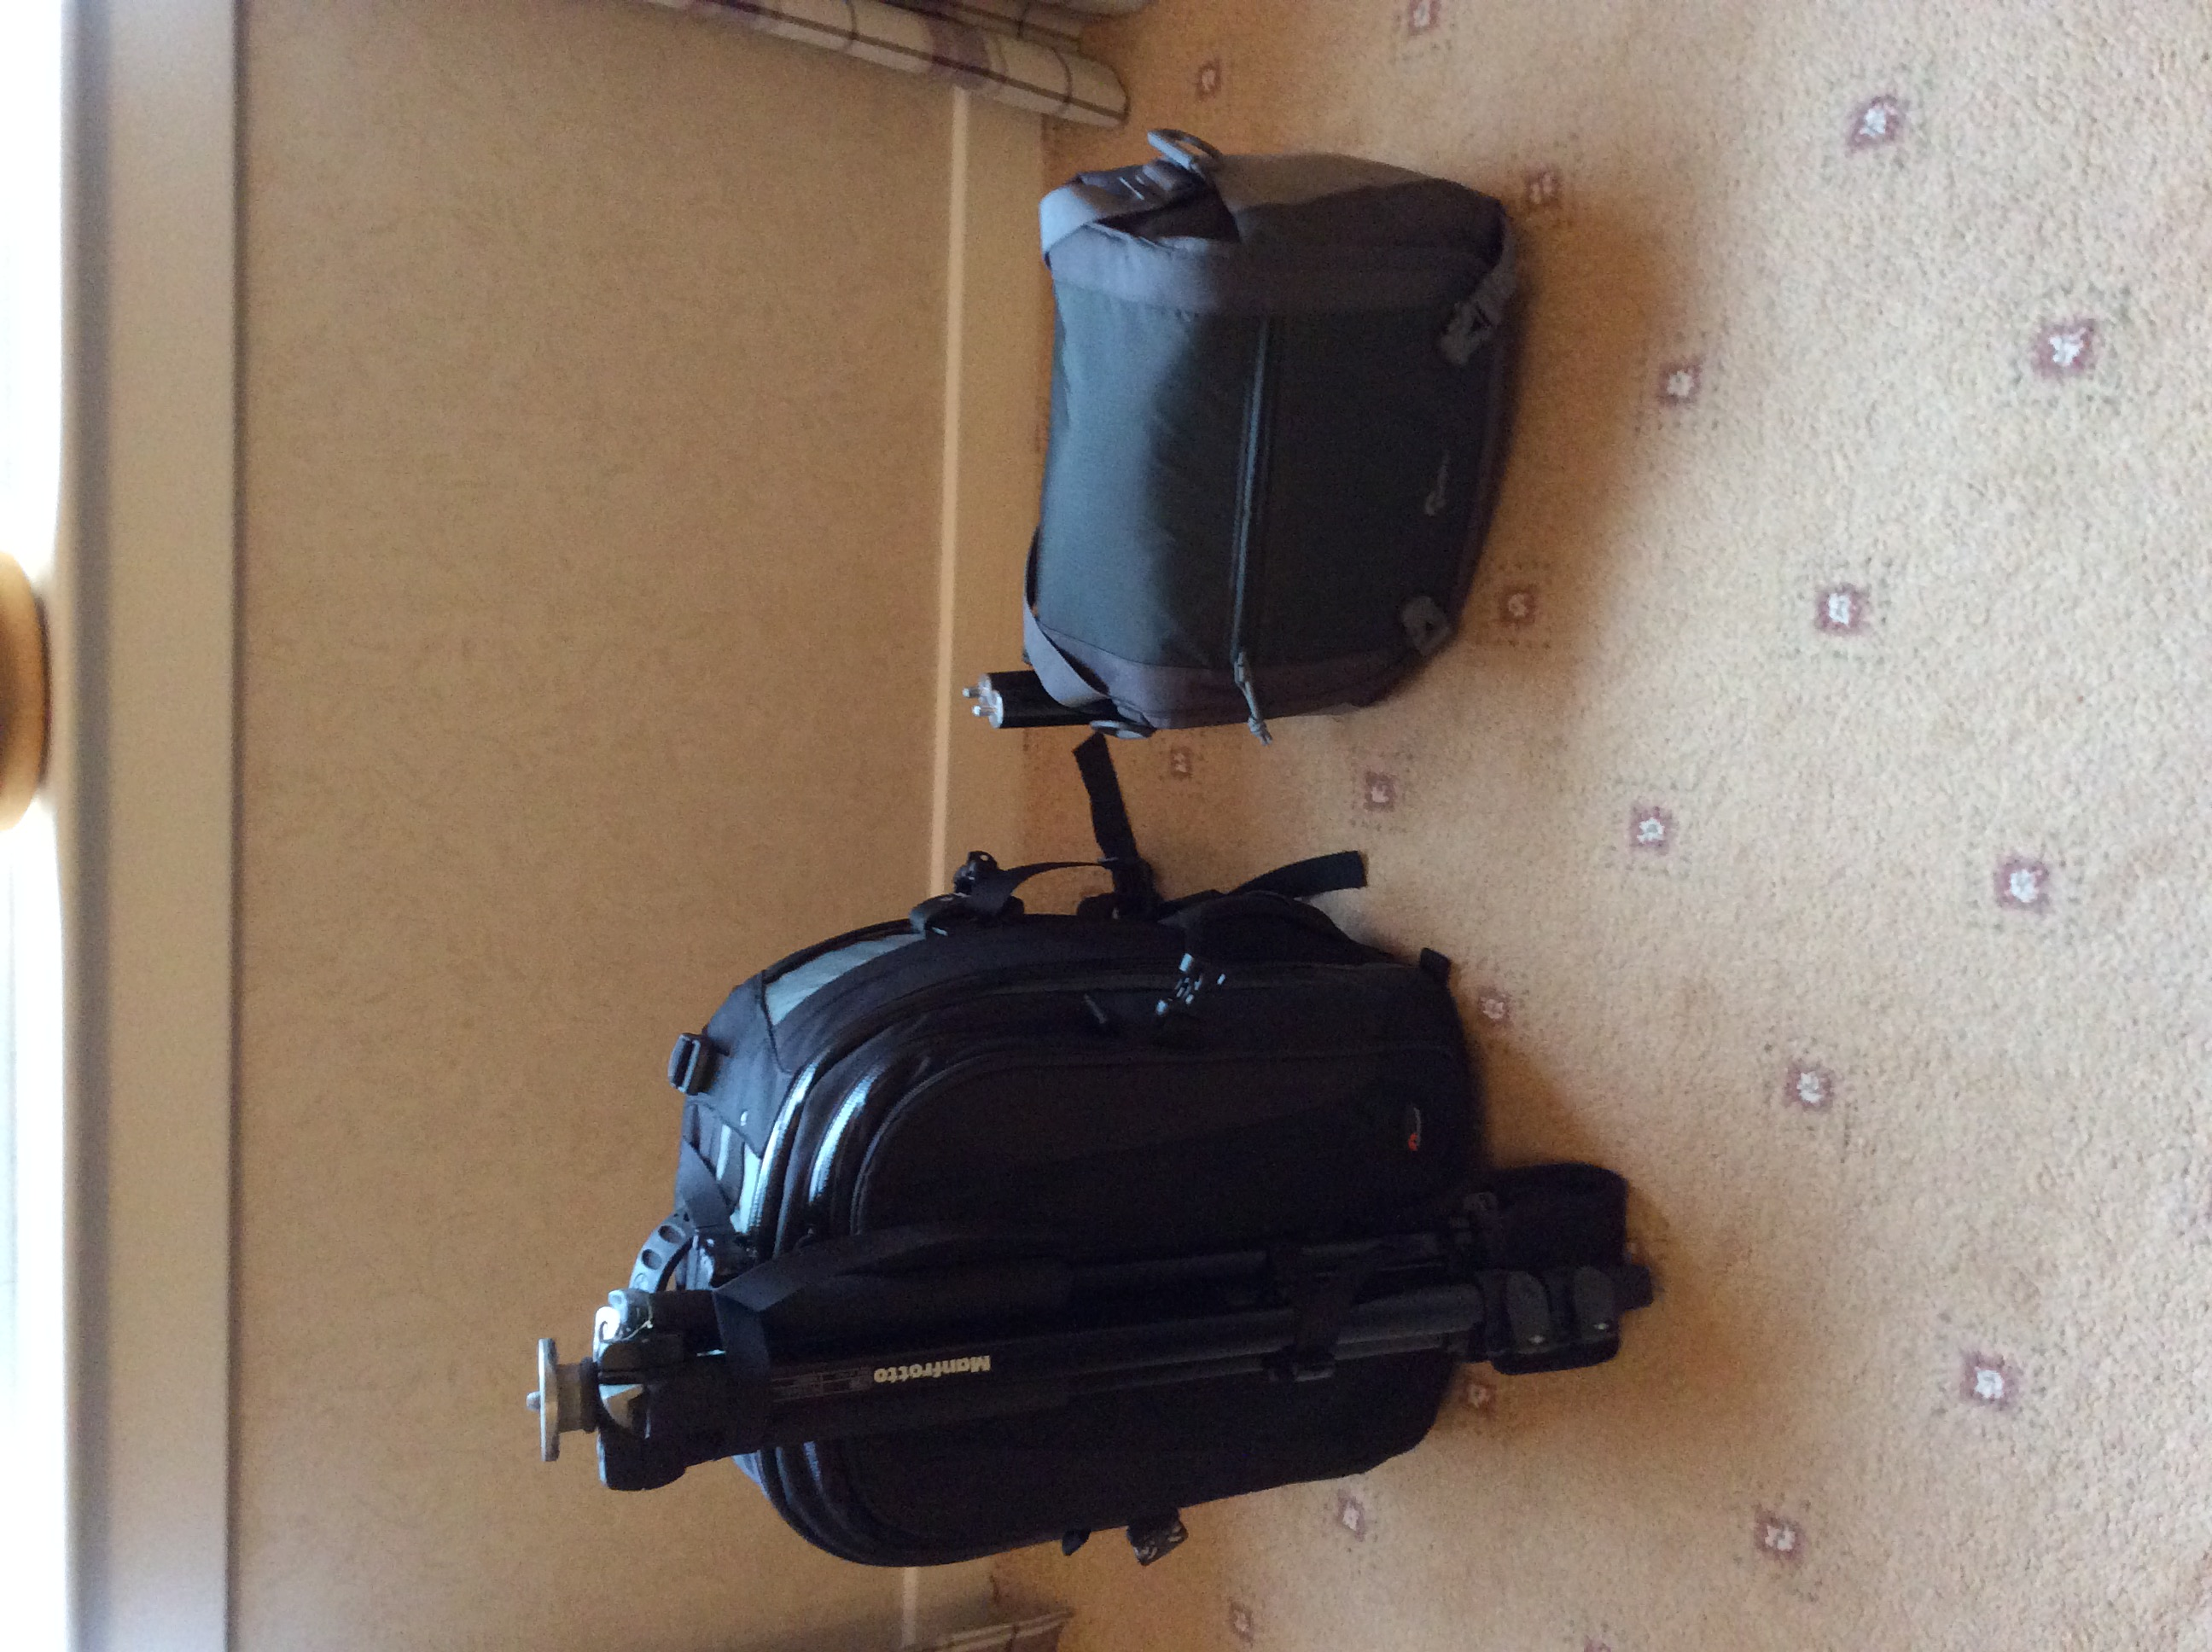 All the equipment packed up. Try to keep everything small and tidy.